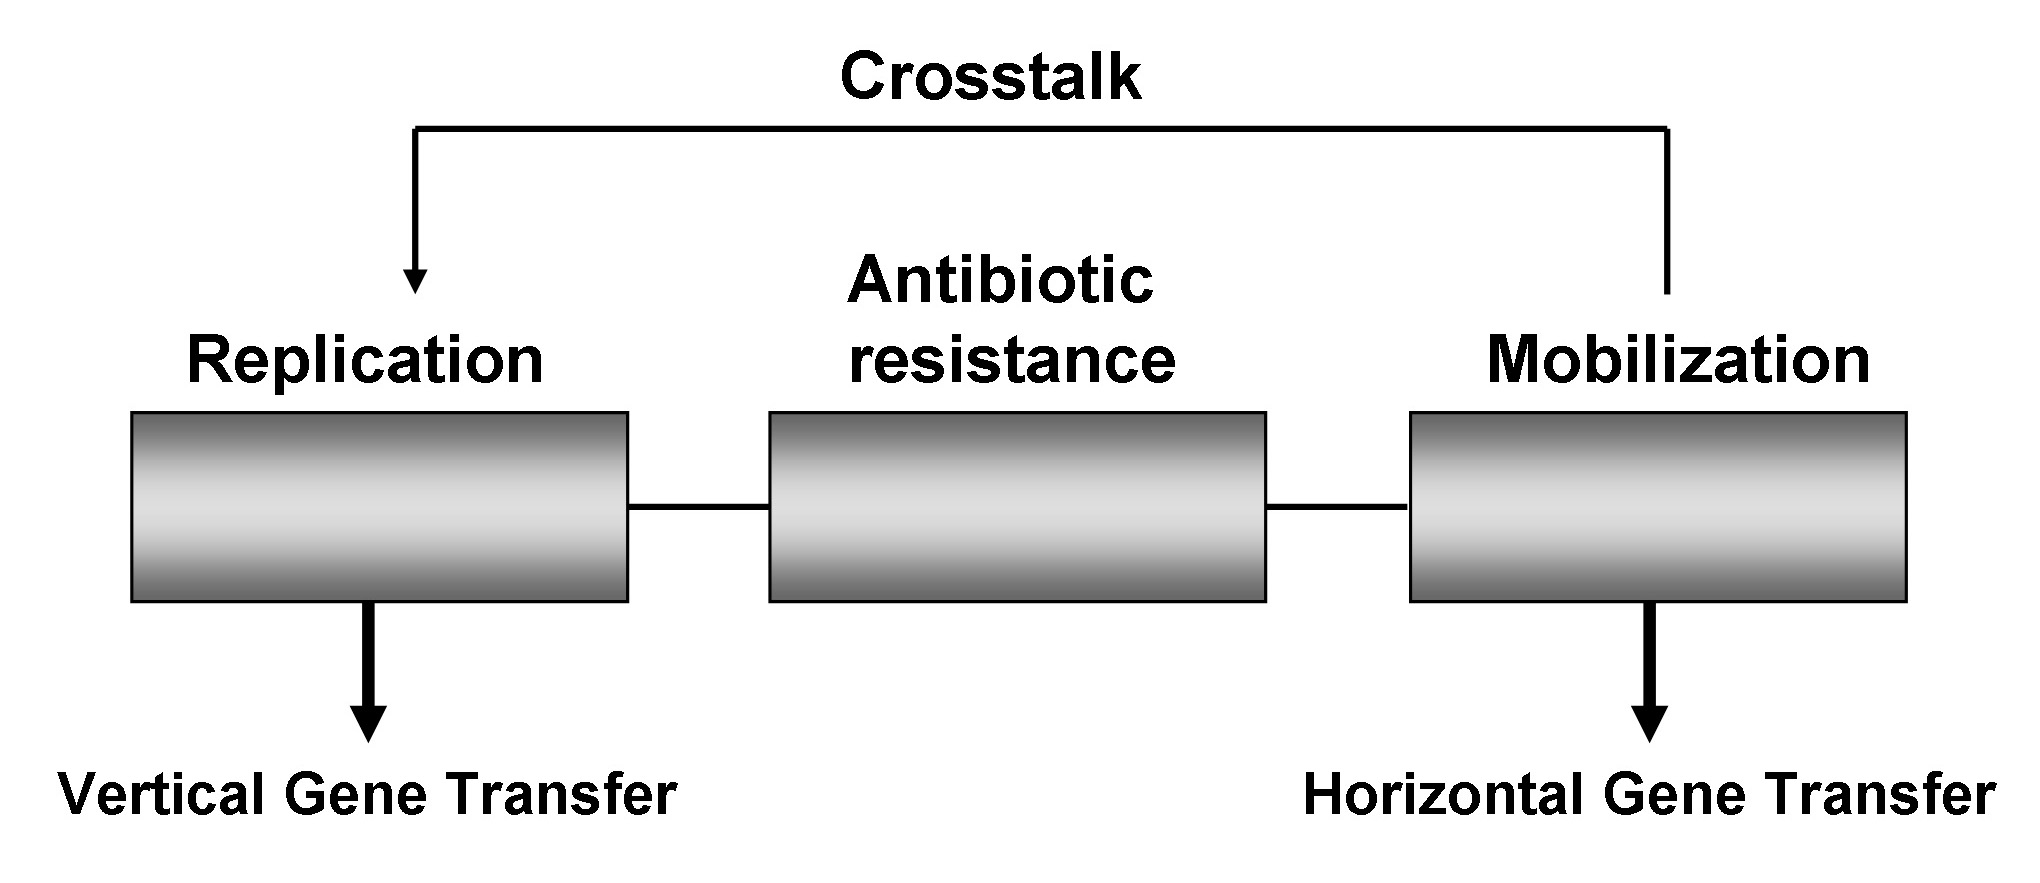 Crosstalk between vertical and horizontal gene transfer